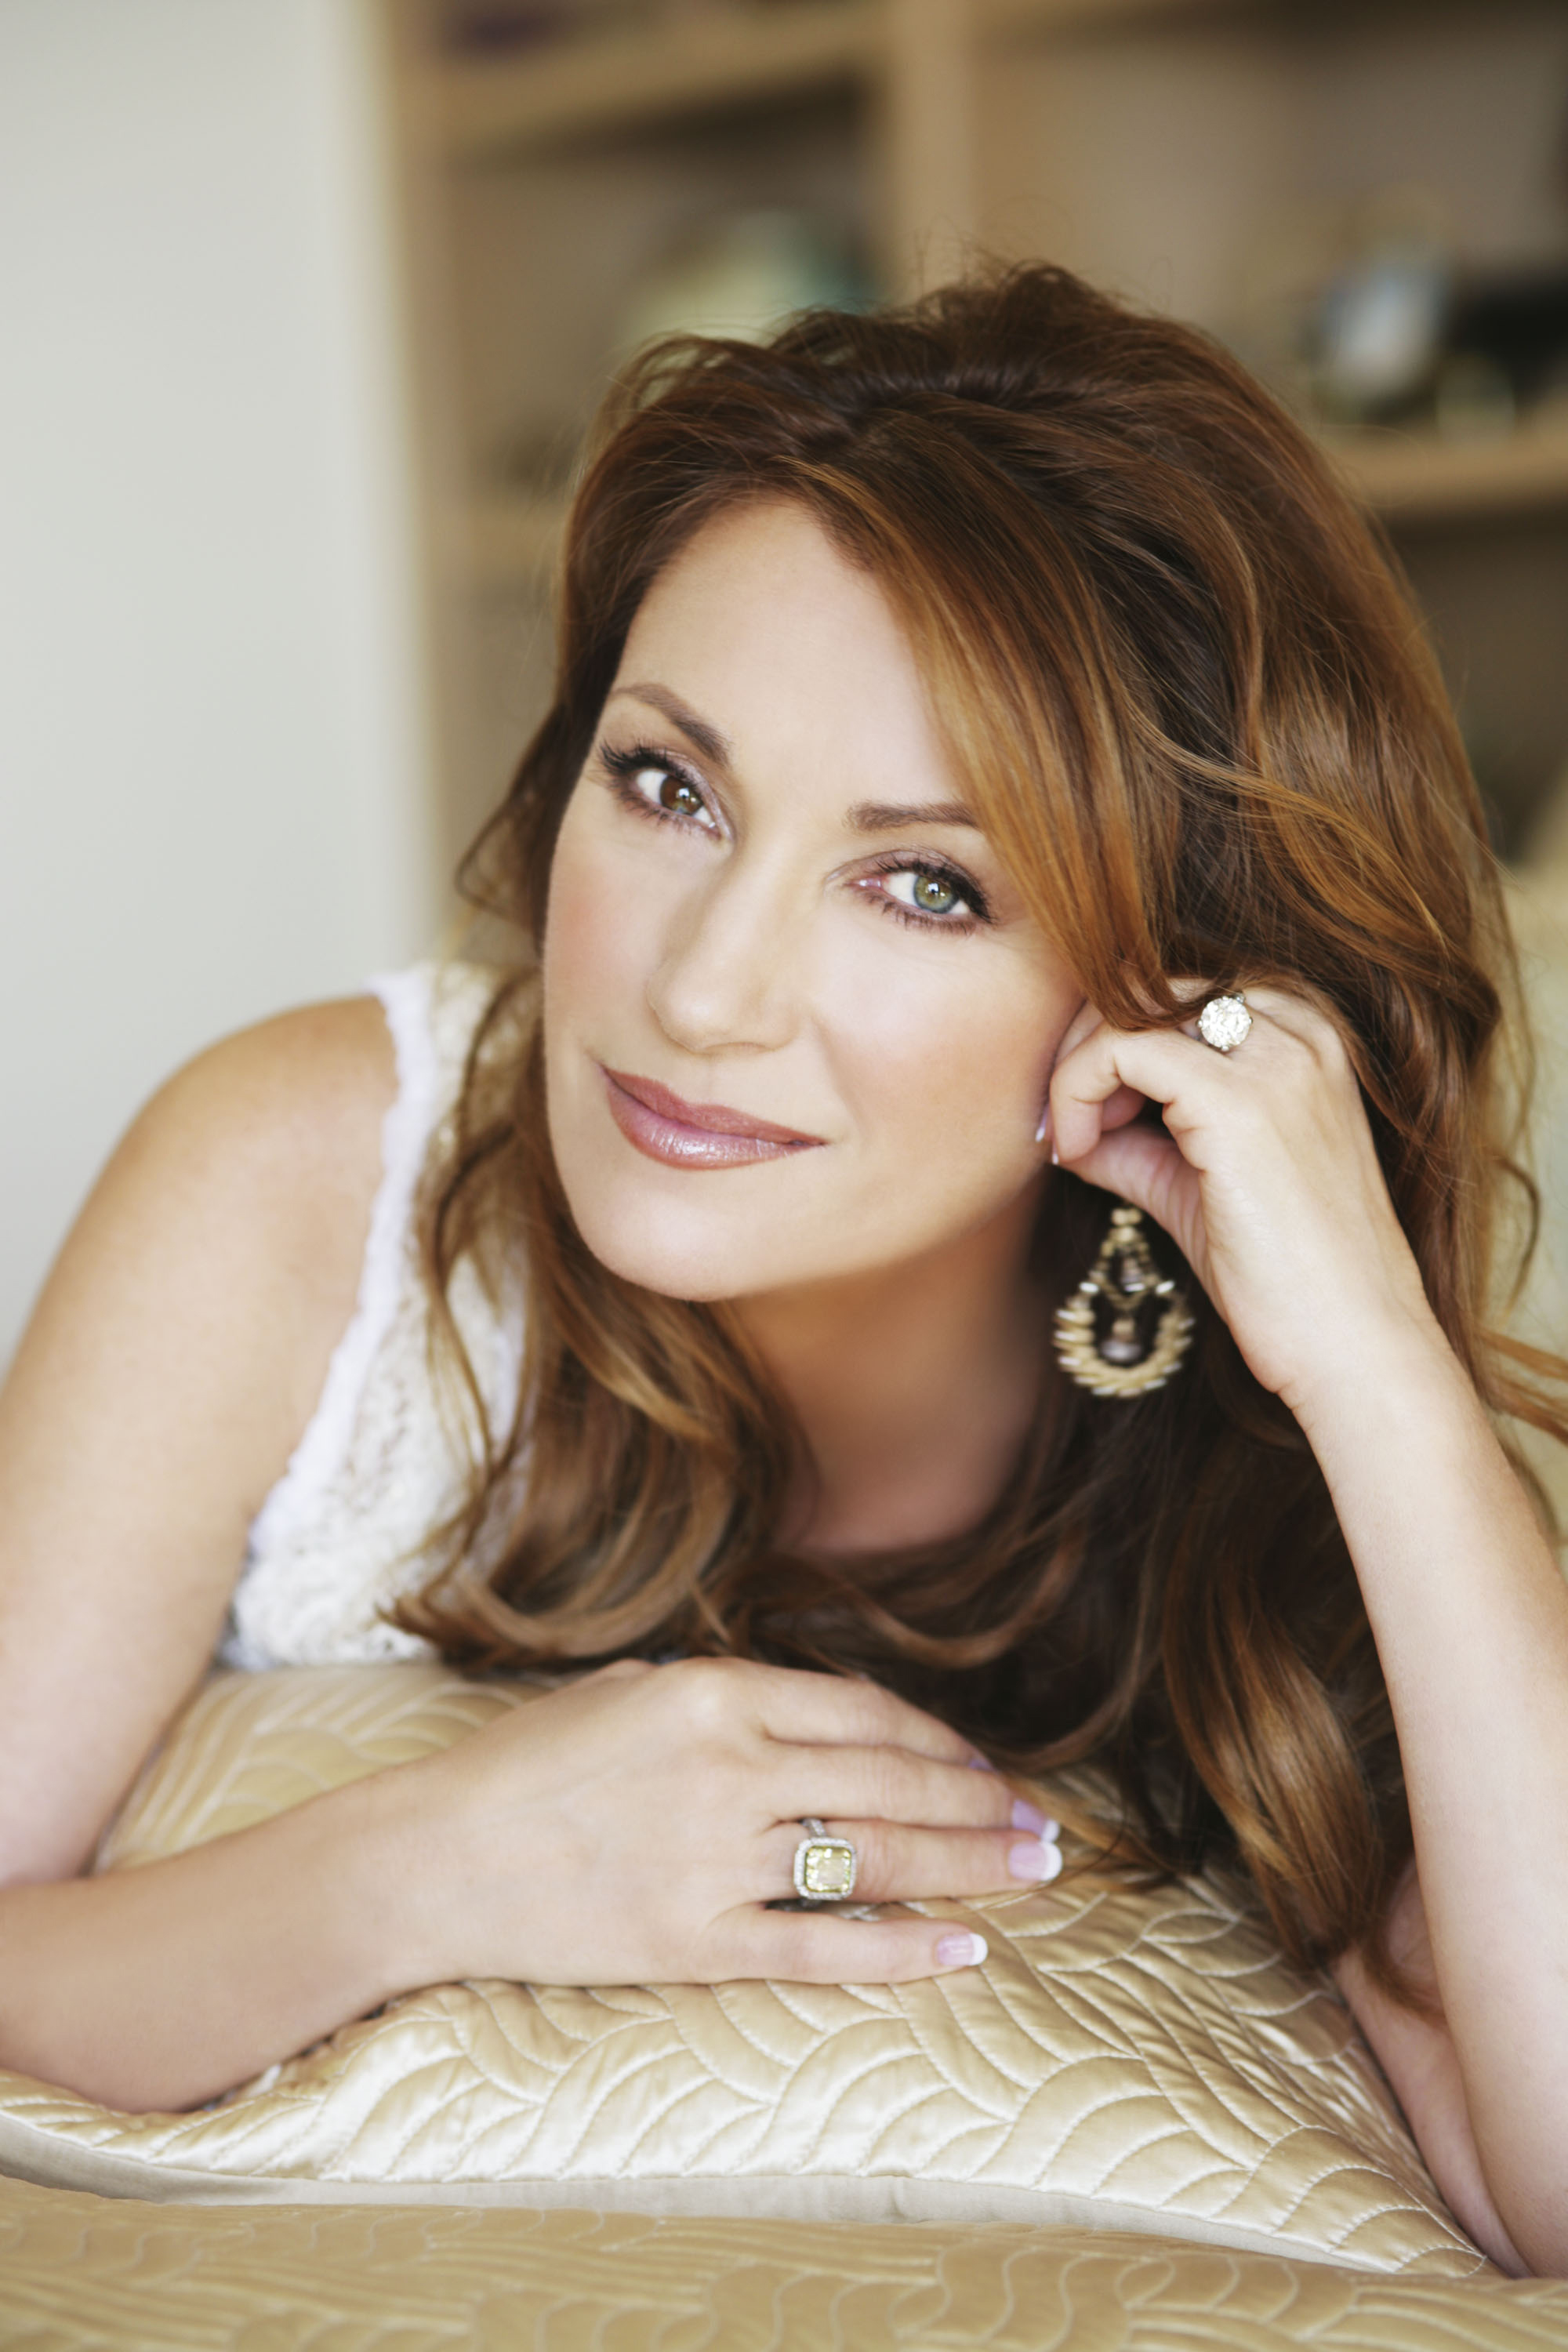 Jane Seymour, Offical Spokesperson for Camp Soaring Eagle